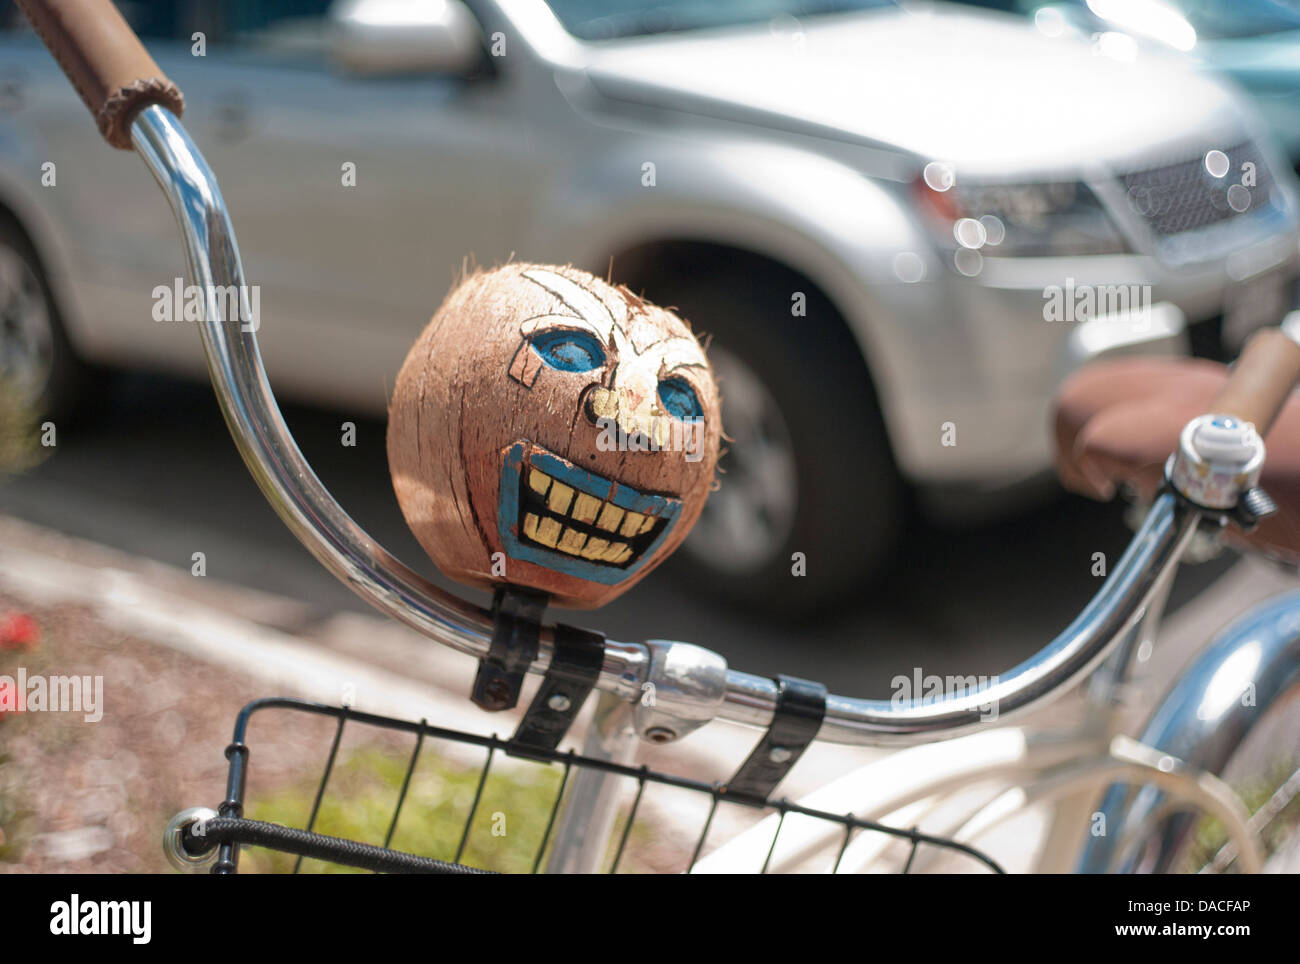 Grinning coconut head on bicycle handlebars. - Stock Image